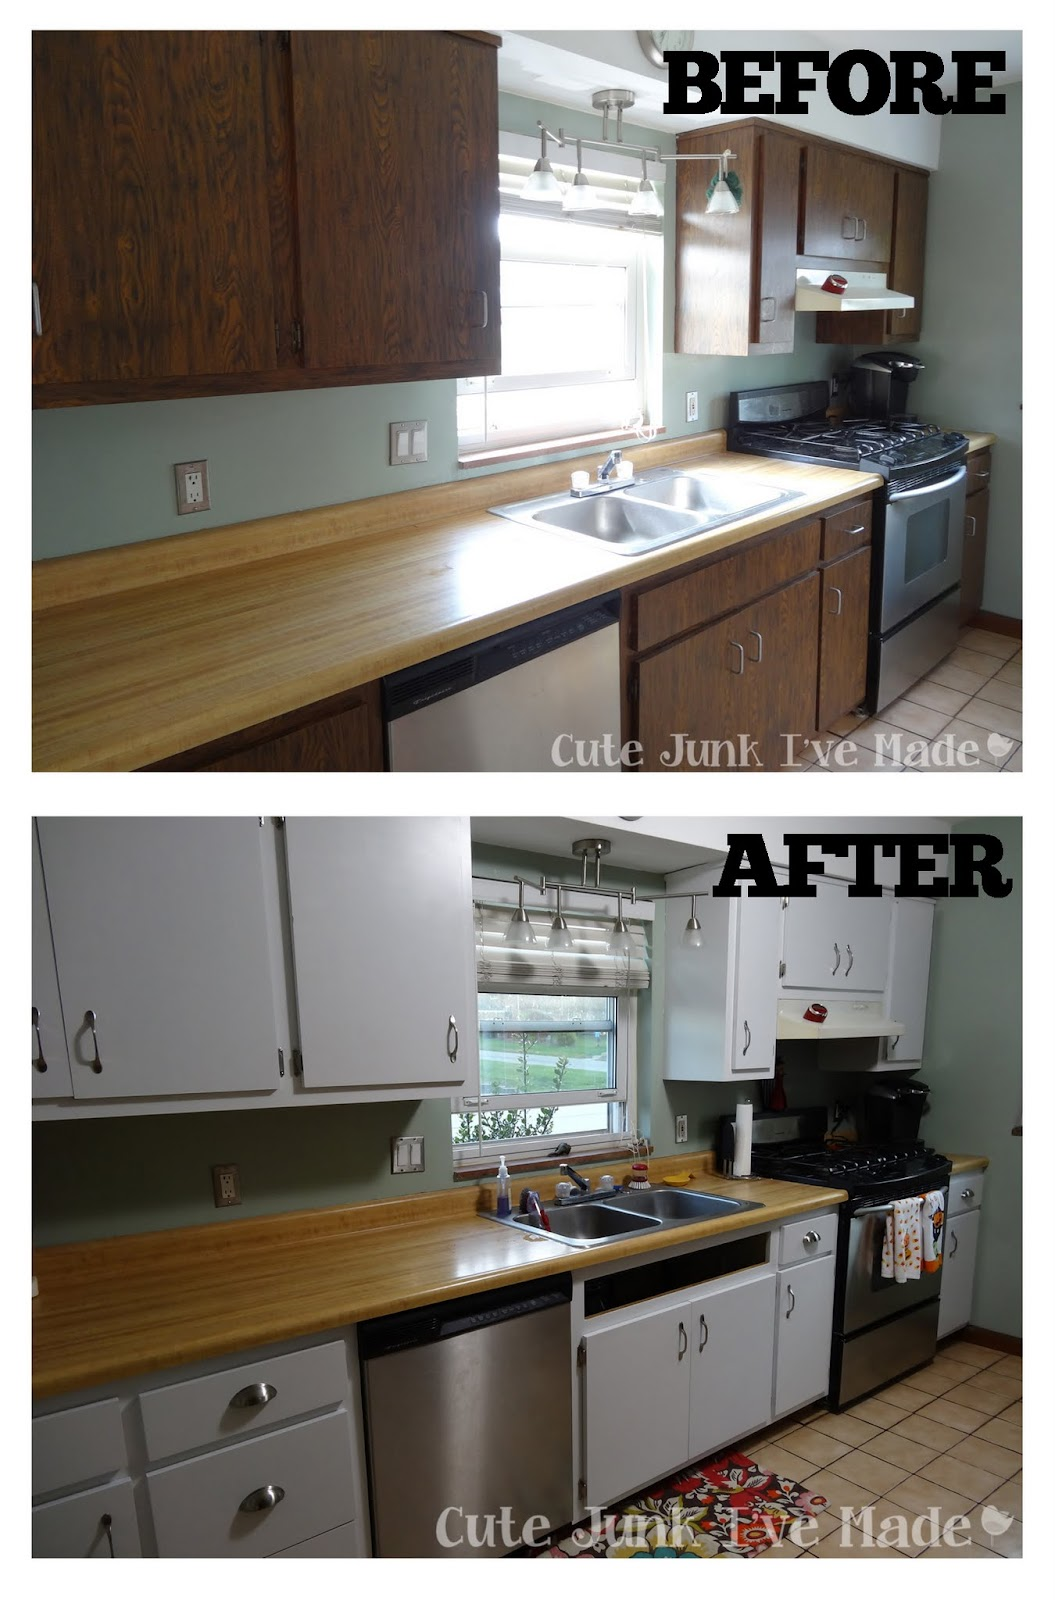 How To Update Laminate Kitchen Cabinets Cute Junk I 39ve Made How To Paint Laminate Cabinets Part